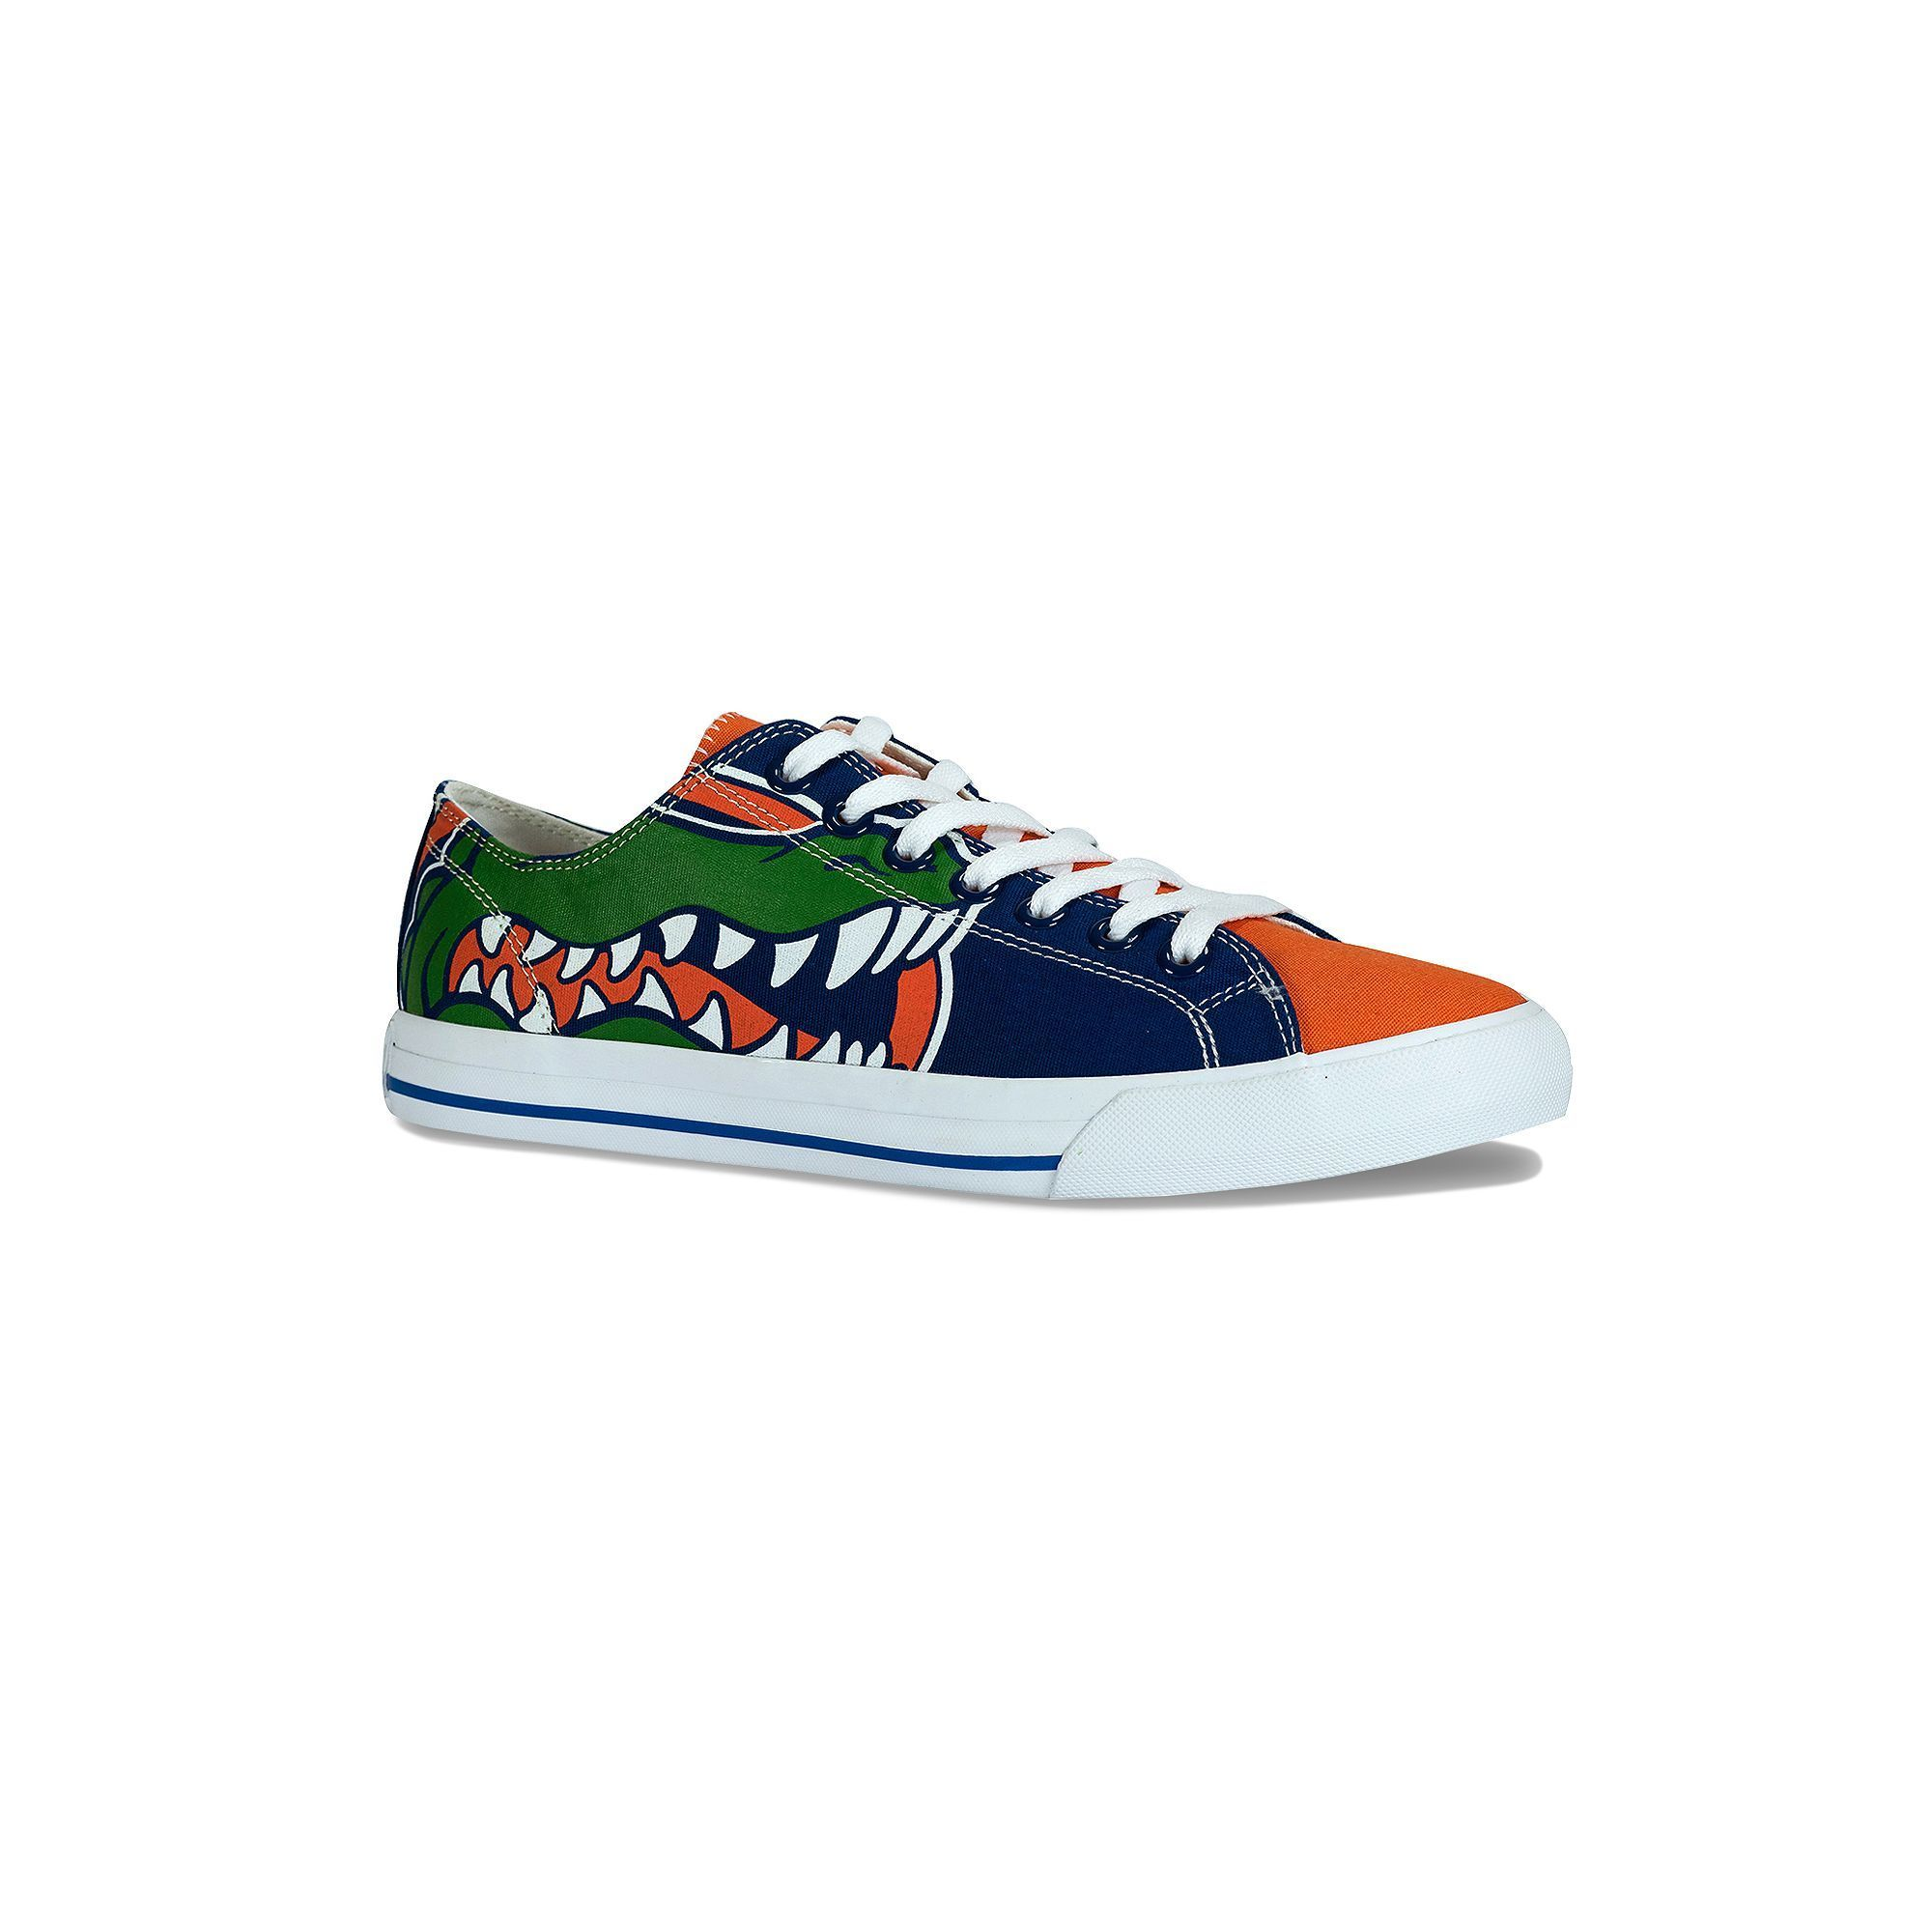 Adult Row One Florida Gators Victory Sneakers Adult Unisex Size 45 Med